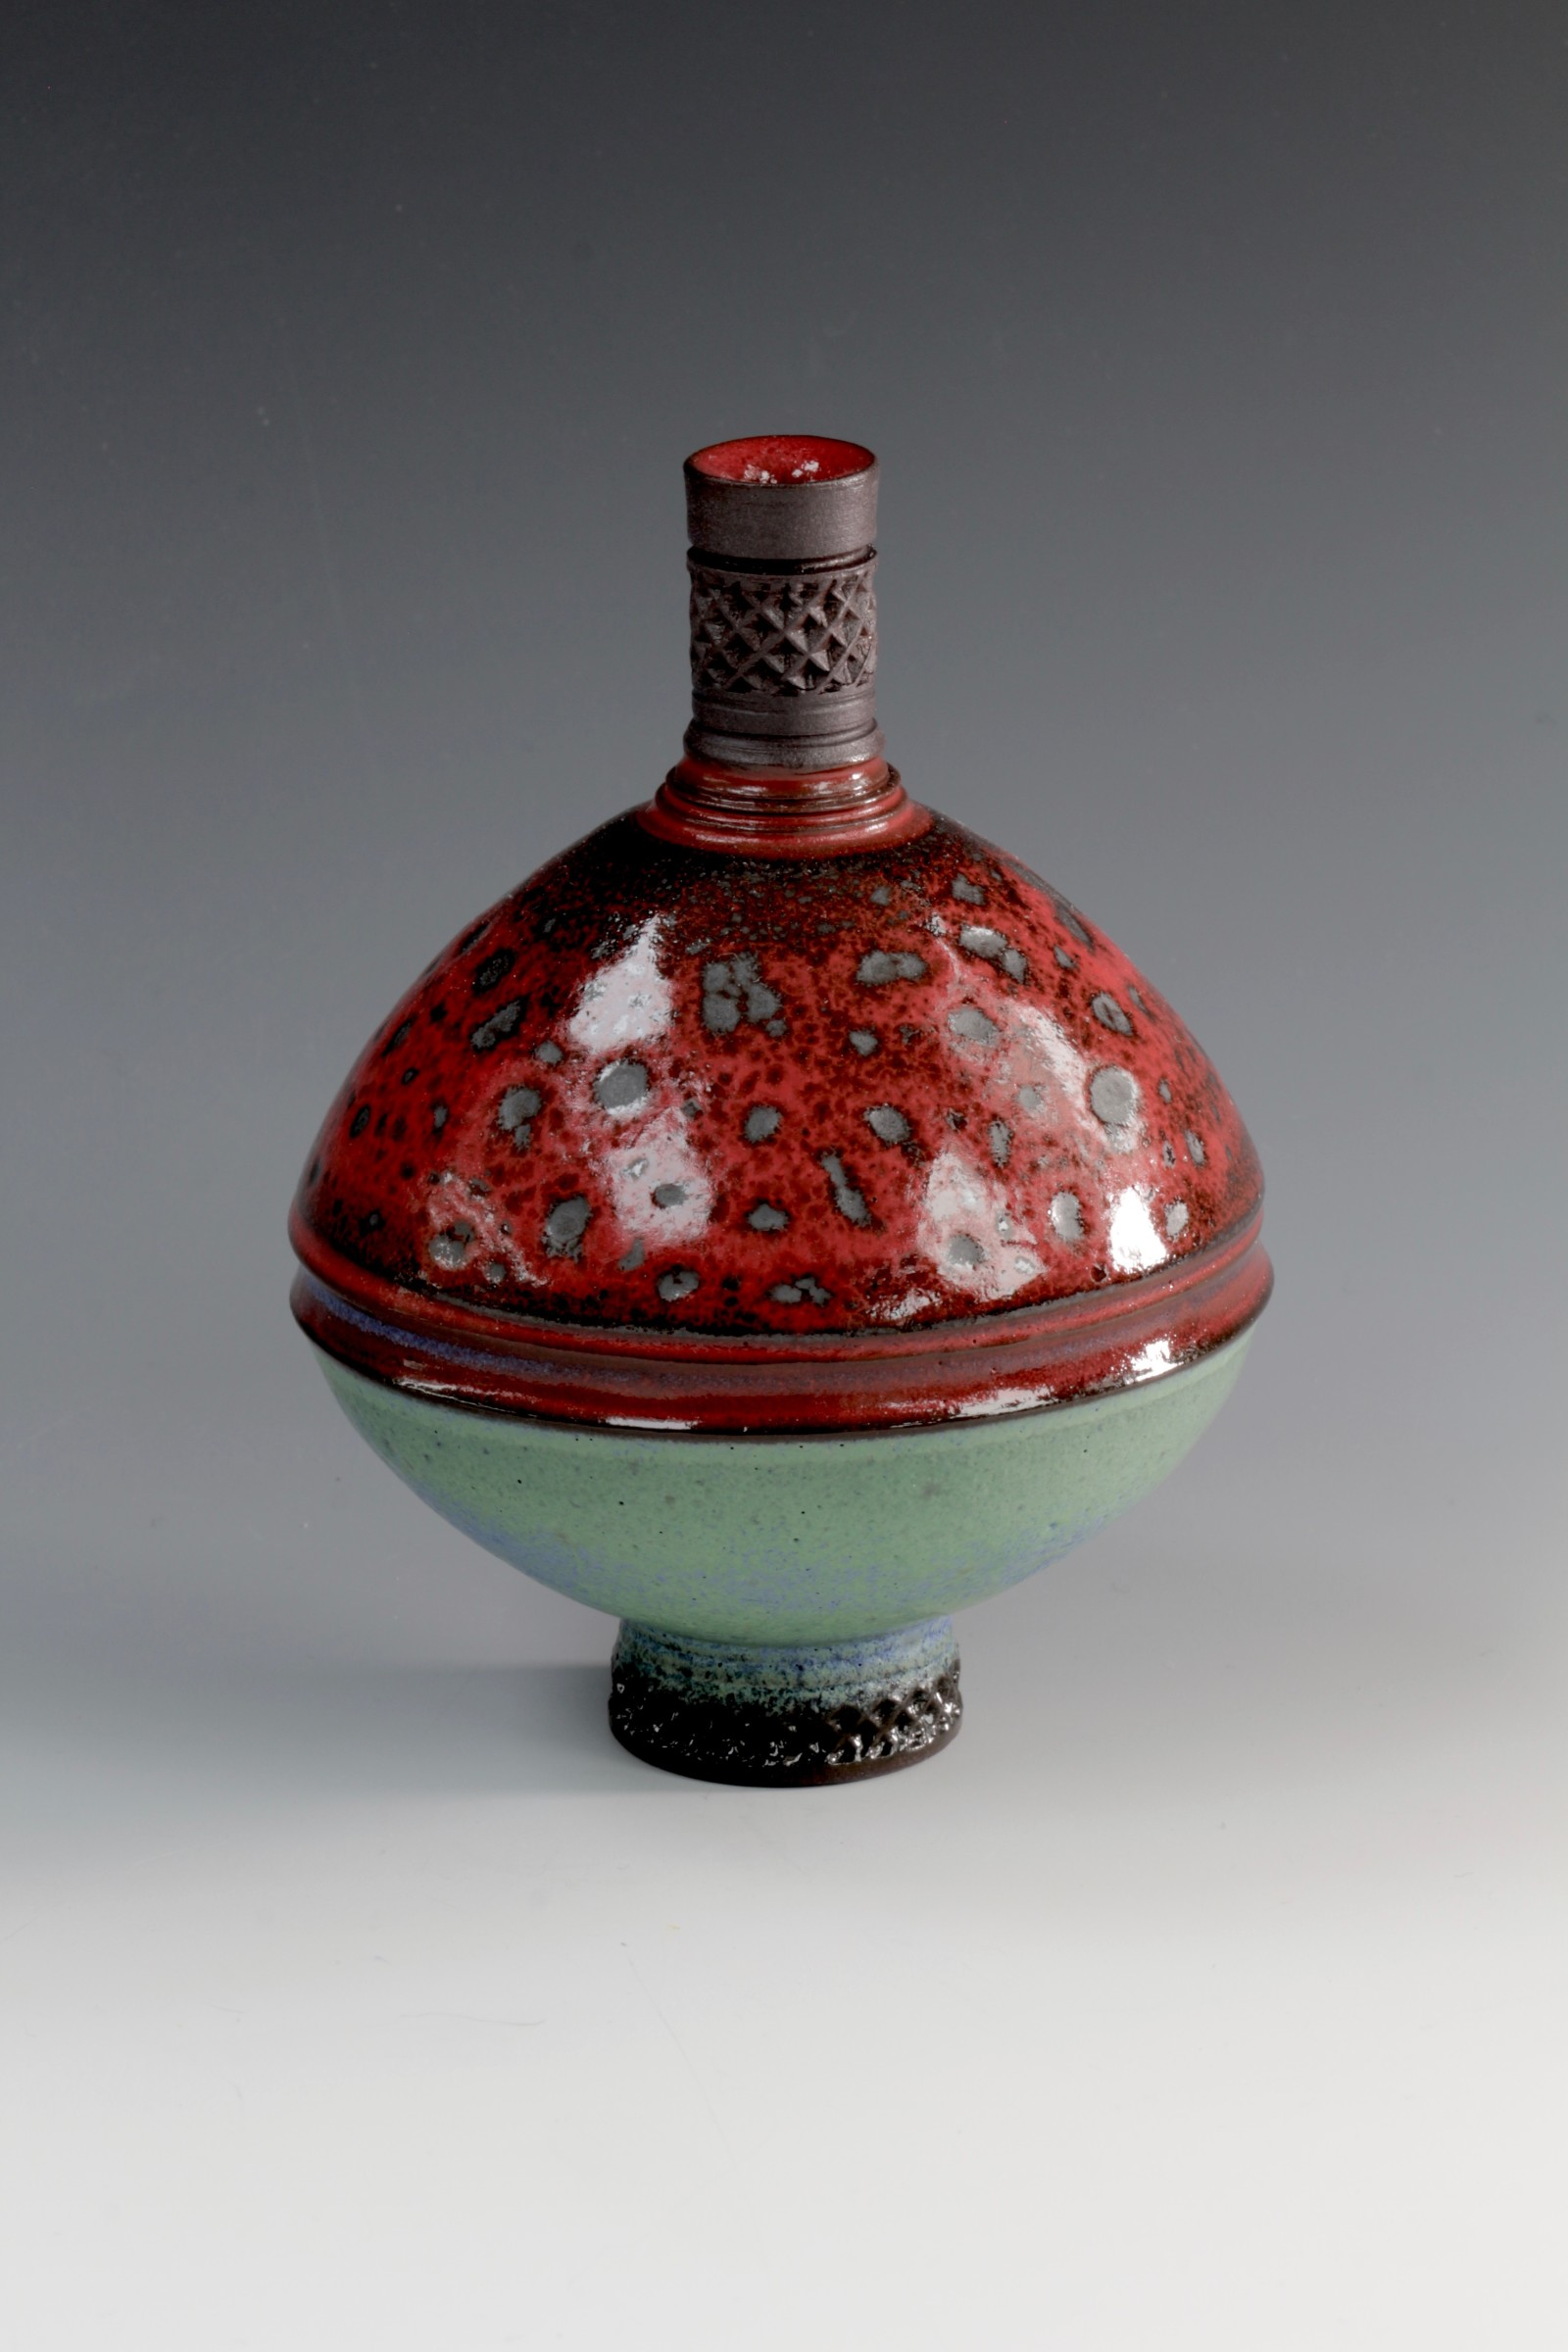 "<span class=""link fancybox-details-link""><a href=""/artists/61-geoffrey-swindell/works/6905-geoffrey-swindell-bud-vase-2020/"">View Detail Page</a></span><div class=""artist""><strong>Geoffrey Swindell</strong></div> <div class=""title""><em>Bud Vase</em>, 2020</div> <div class=""medium"">Porcelain</div><div class=""price"">£170.00</div><div class=""copyright_line"">Copyright The Artist</div>"